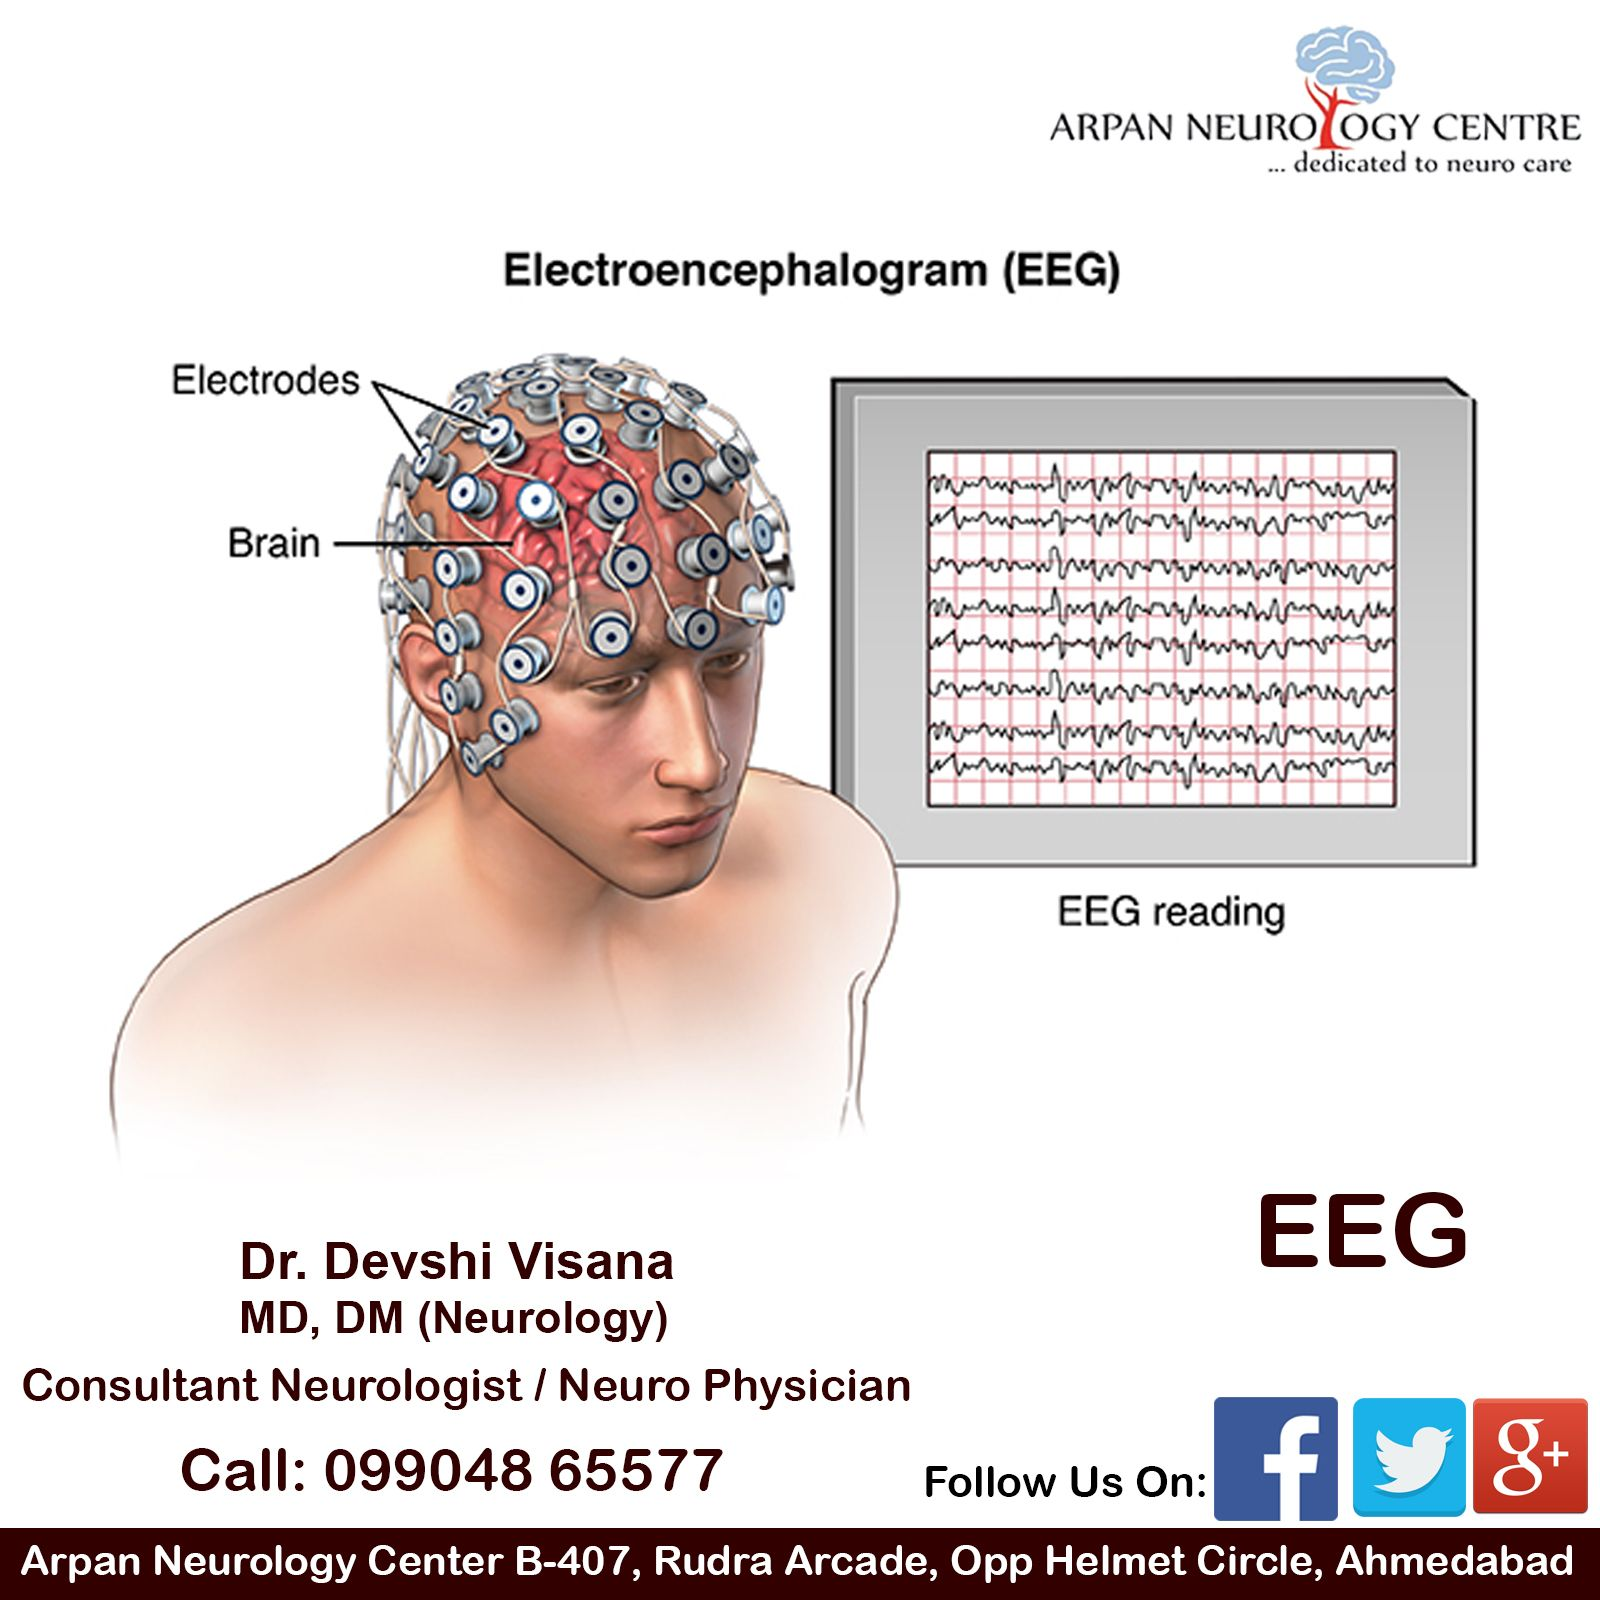 An Electroencephalogram Eeg Is A Test That Measures And Records Emg Hz Wiring Diagram The Electrical Activity Of